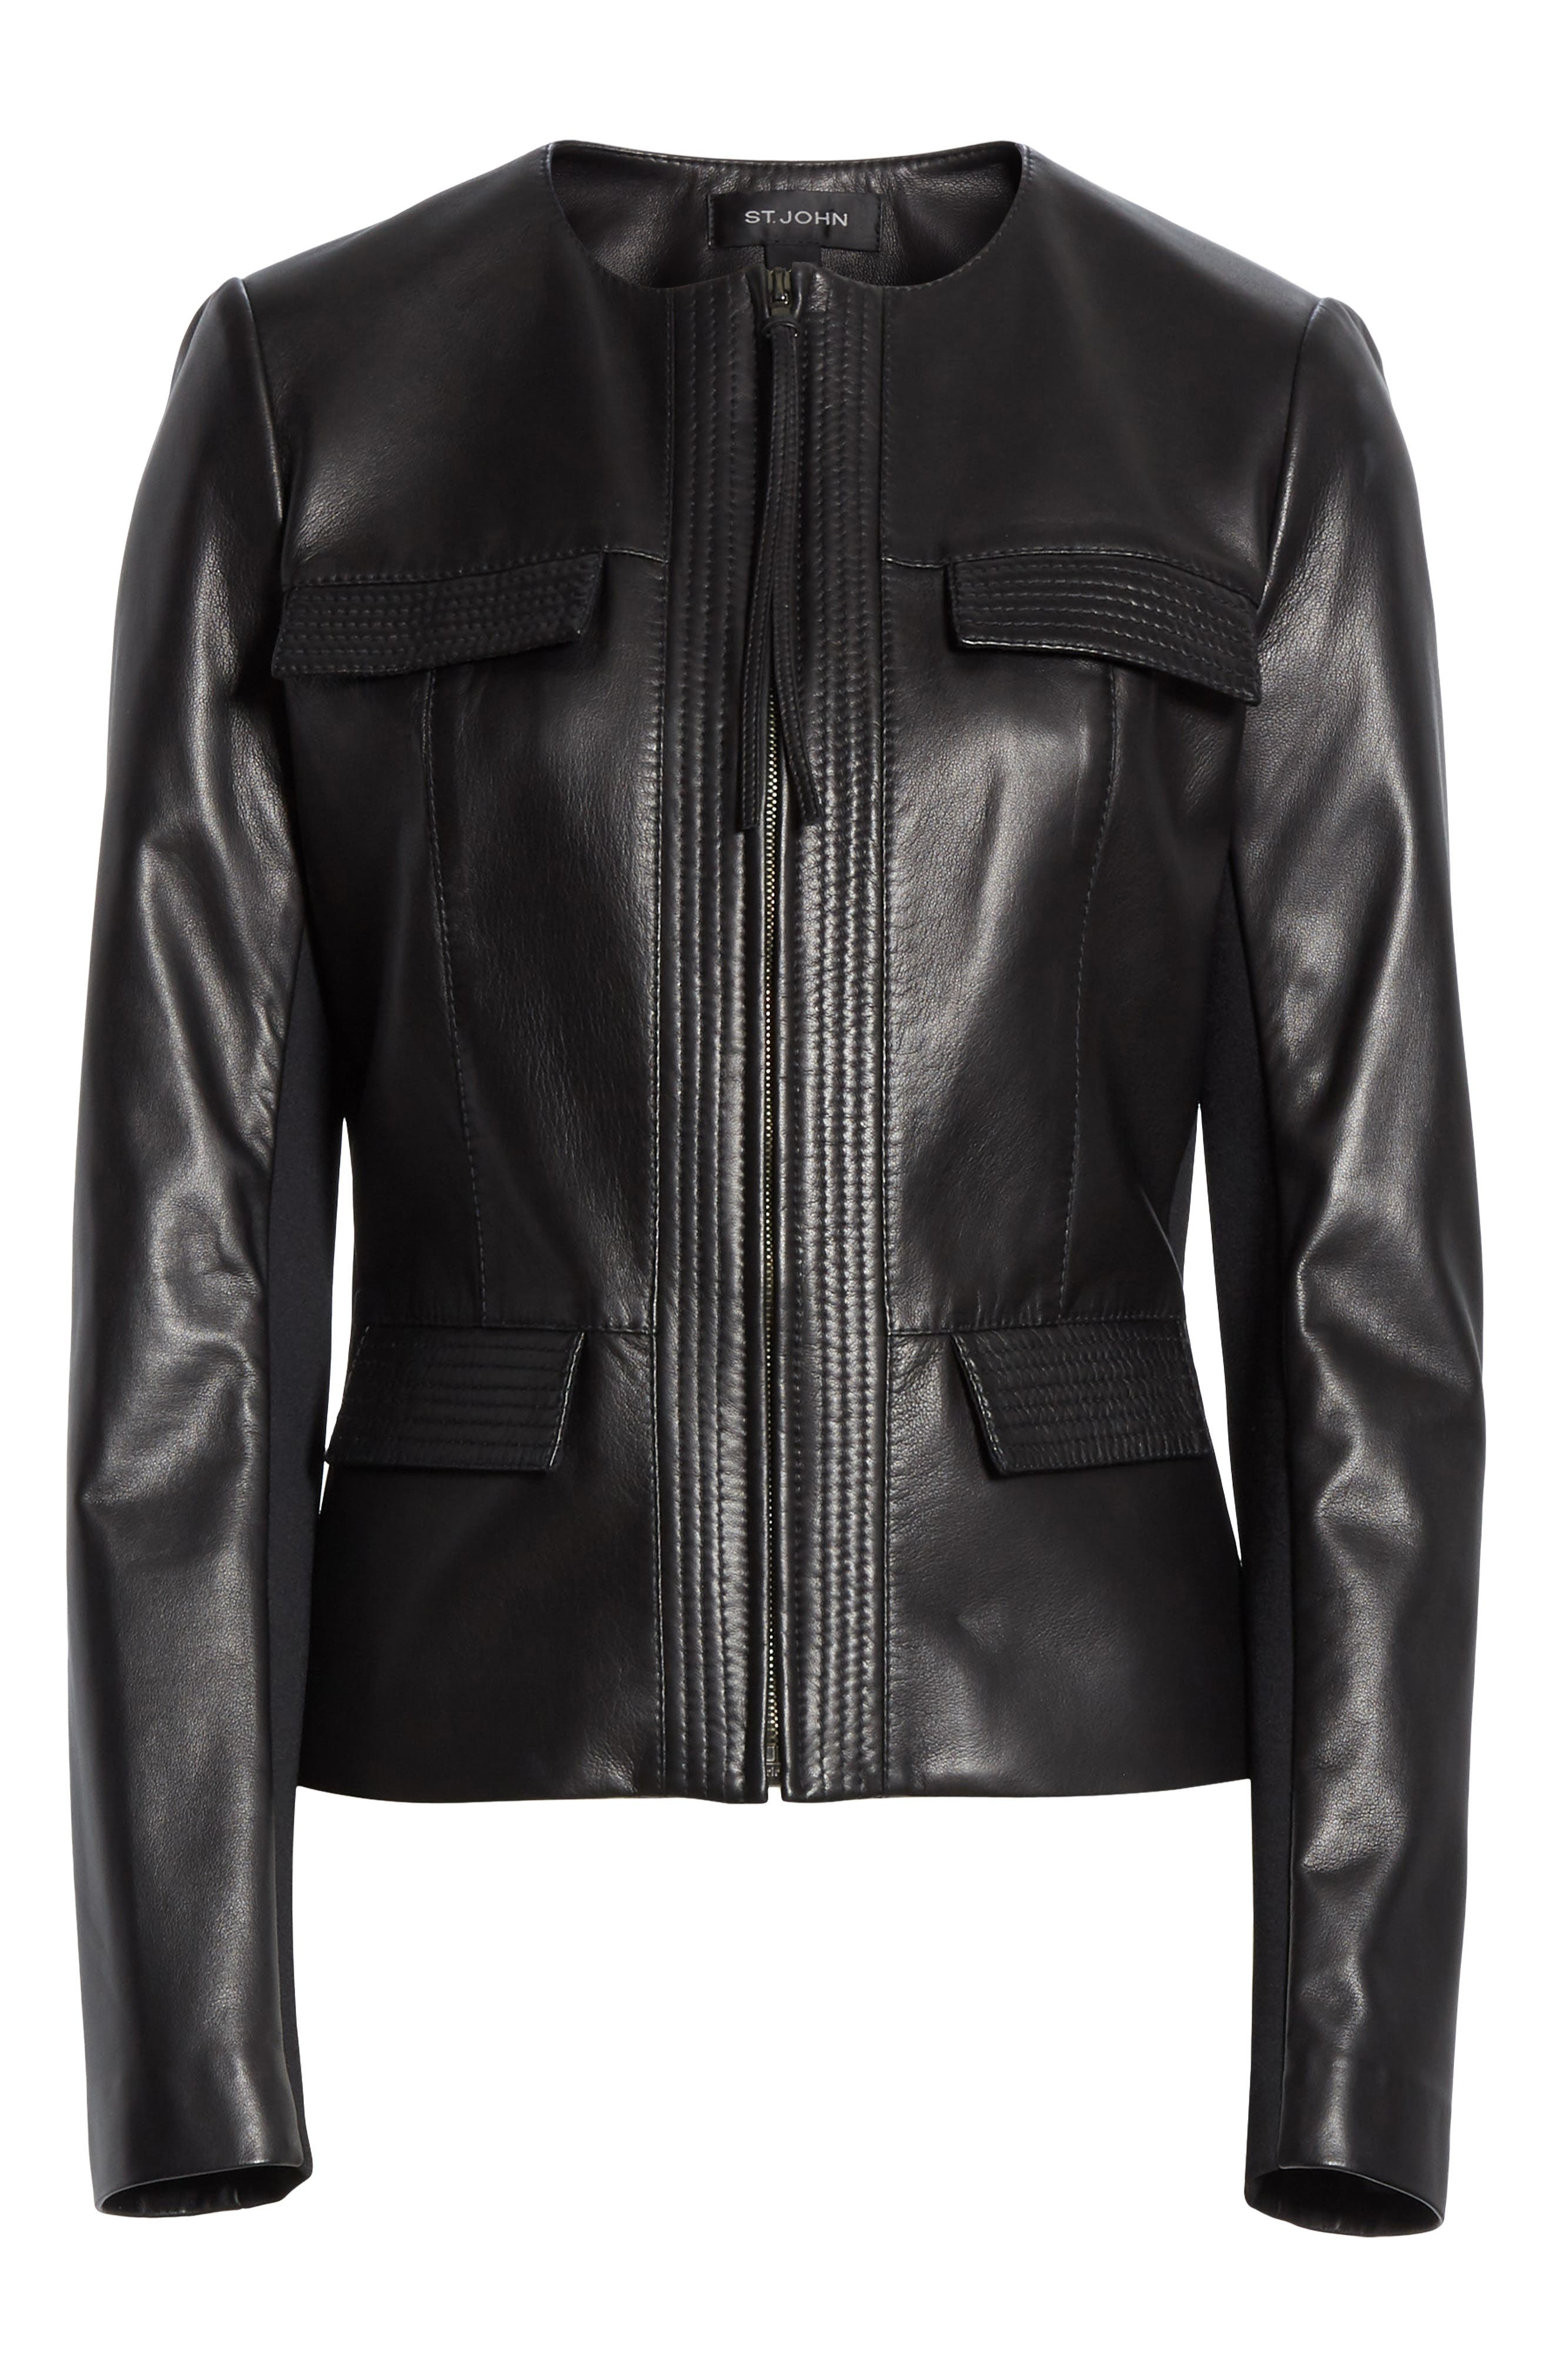 ST. JOHN COLLECTION, Luxe Nappa Leather Jacket, Alternate thumbnail 6, color, CAVIAR